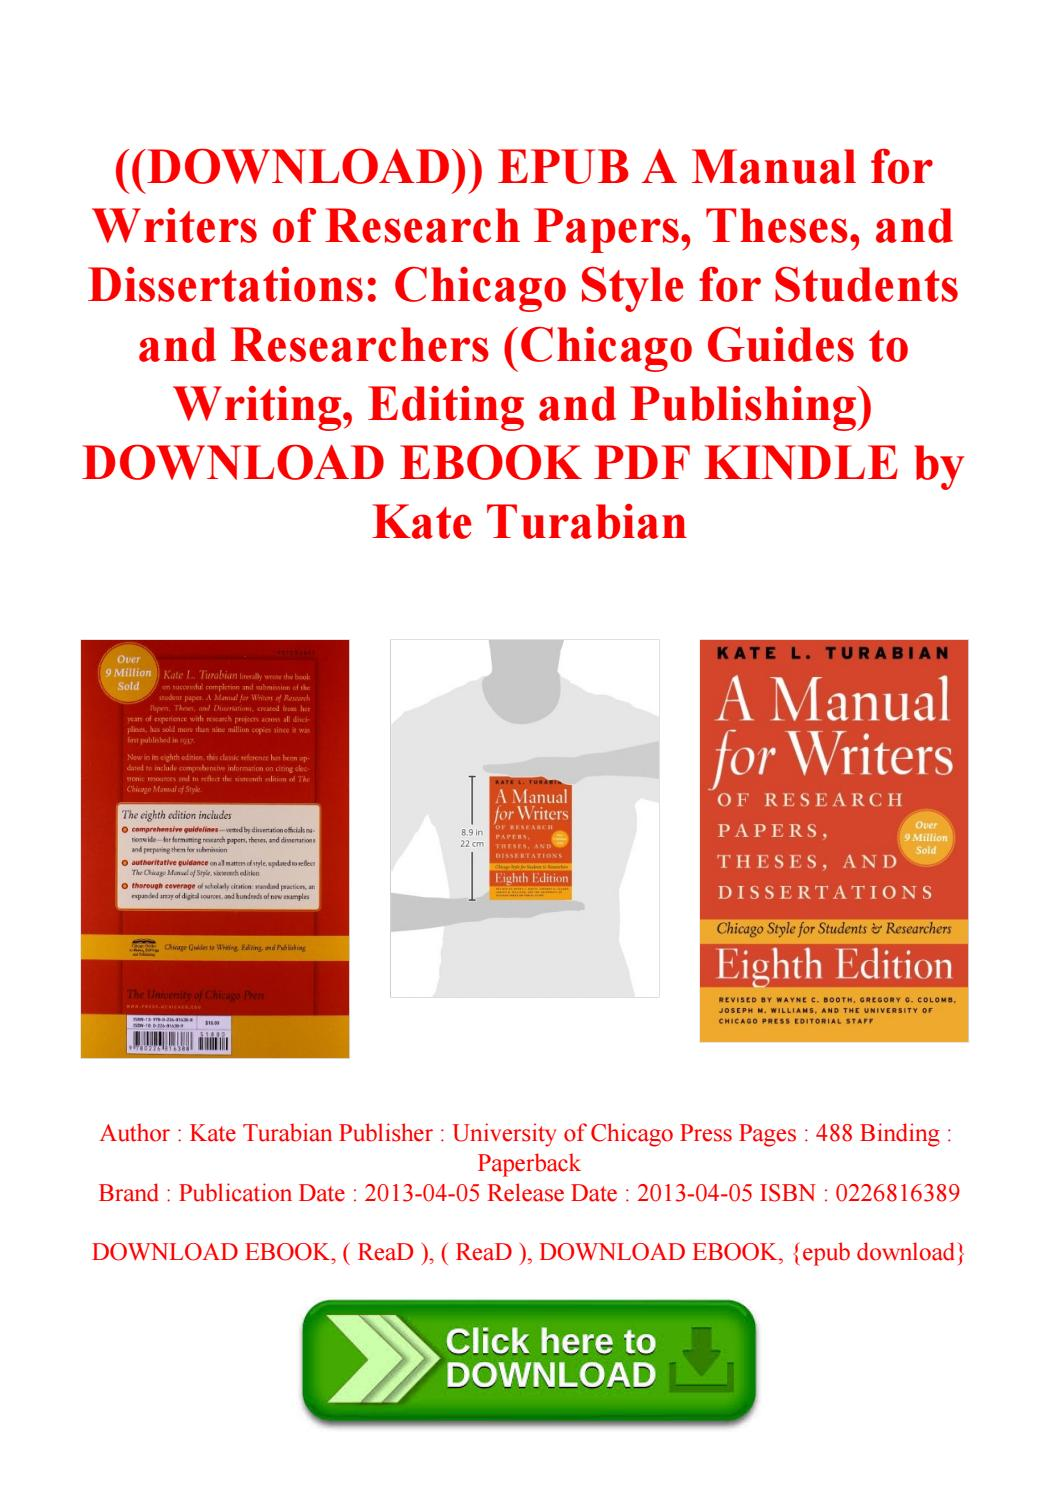 003 Page 1 Manual For Writers Of Researchs Theses And Dissertations Magnificent Research Papers 8th 13 A 9th Edition Apa Full